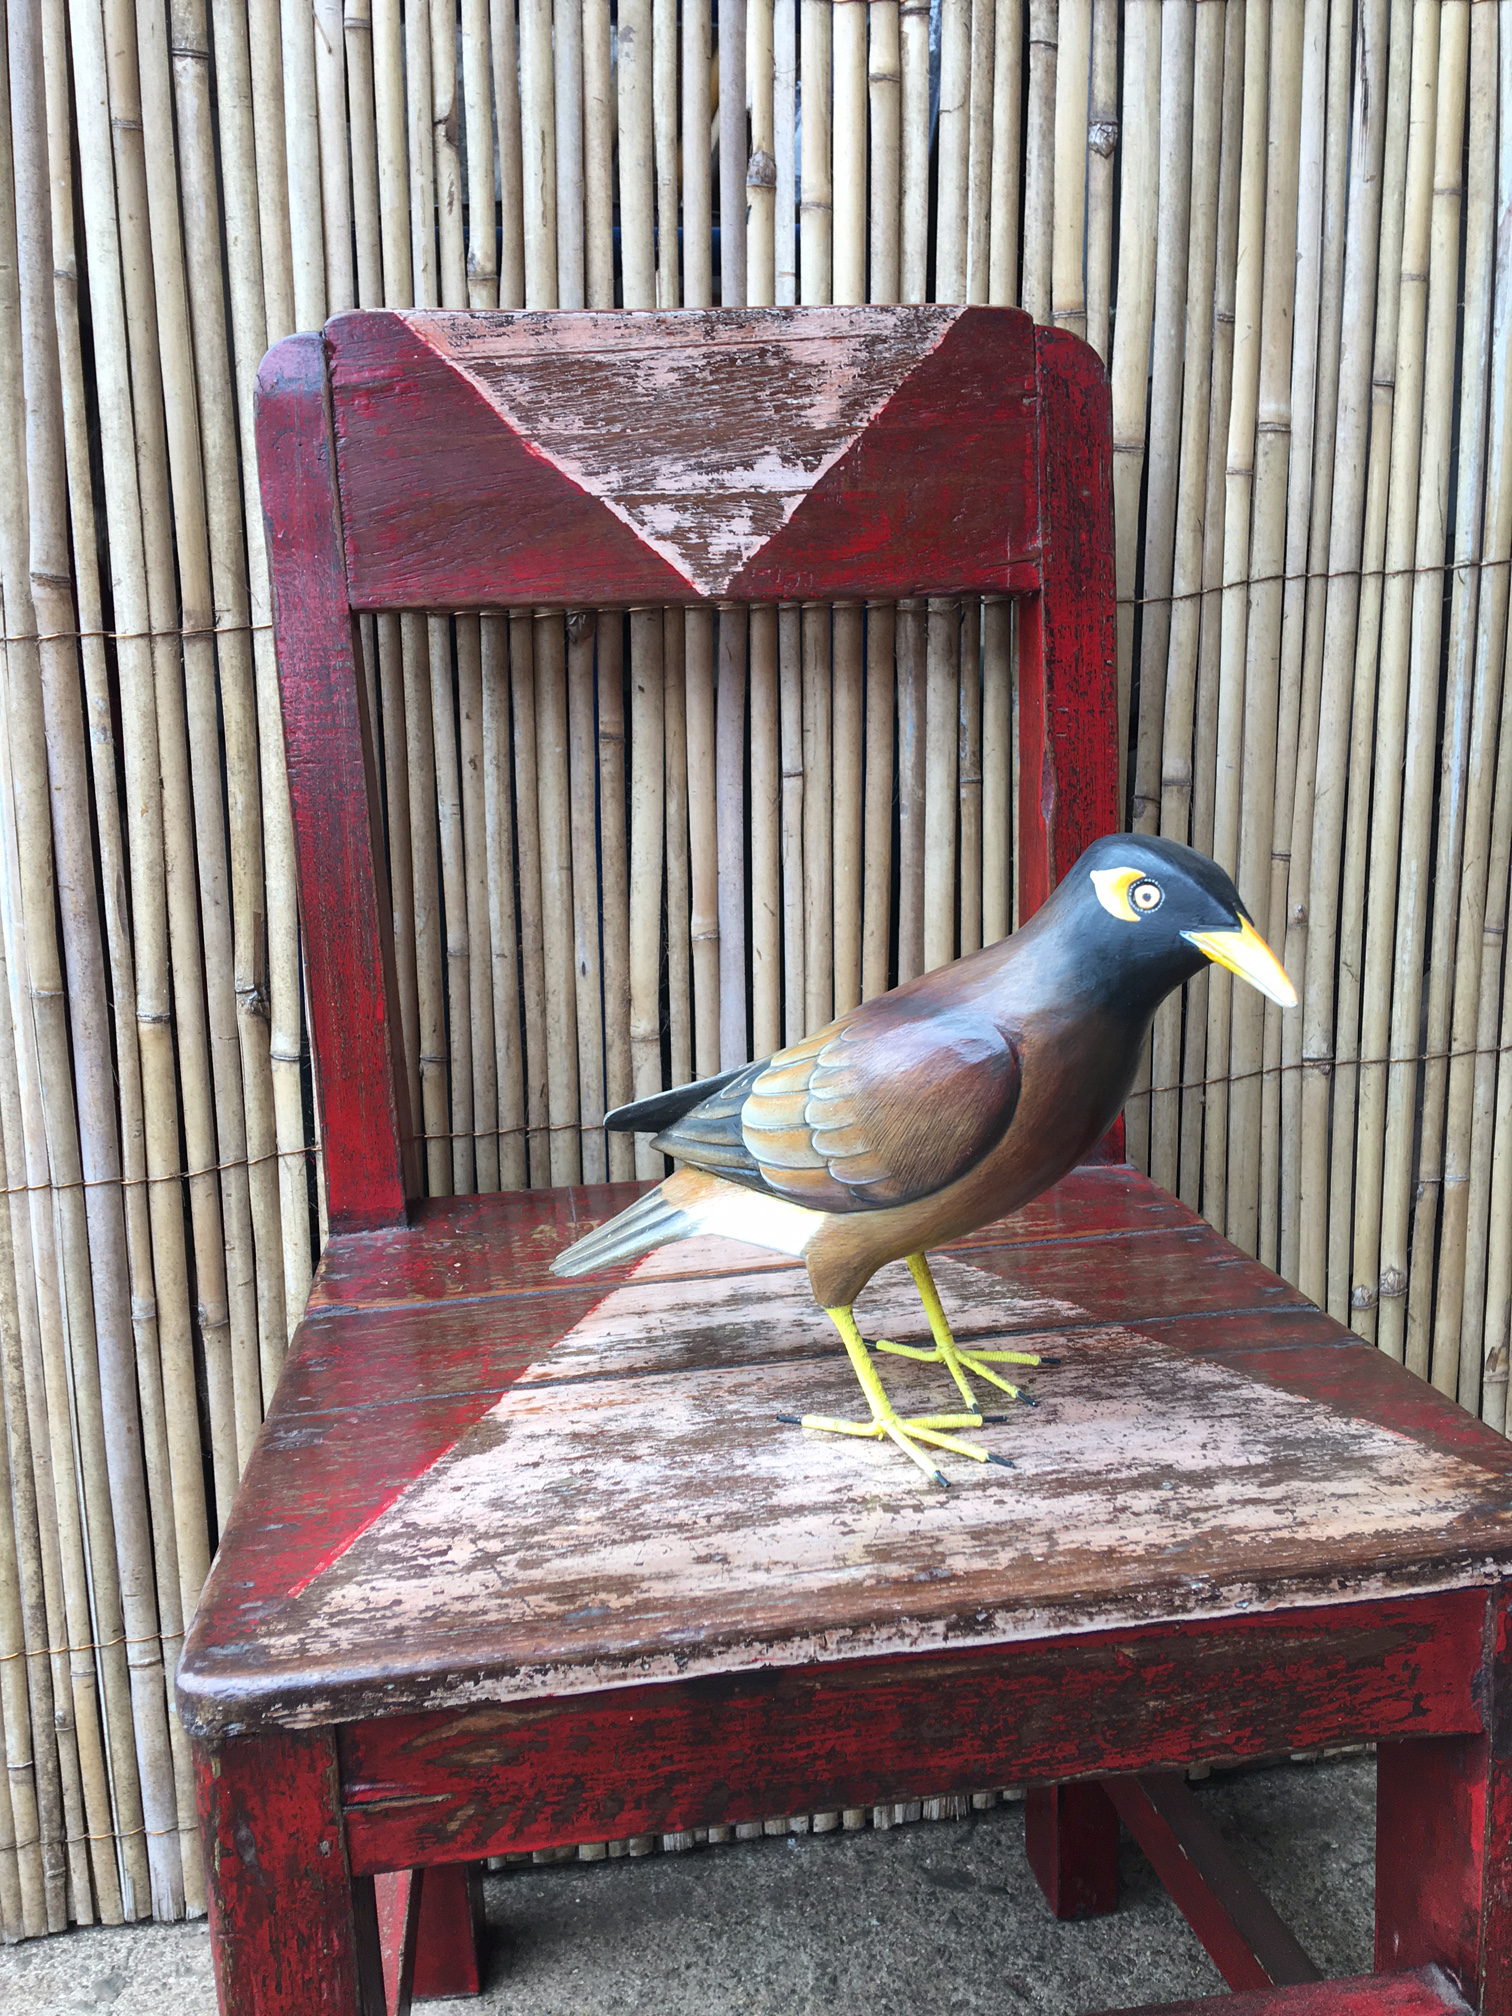 Duck Soup Maui exported goods from Bali. Mynah and chair.